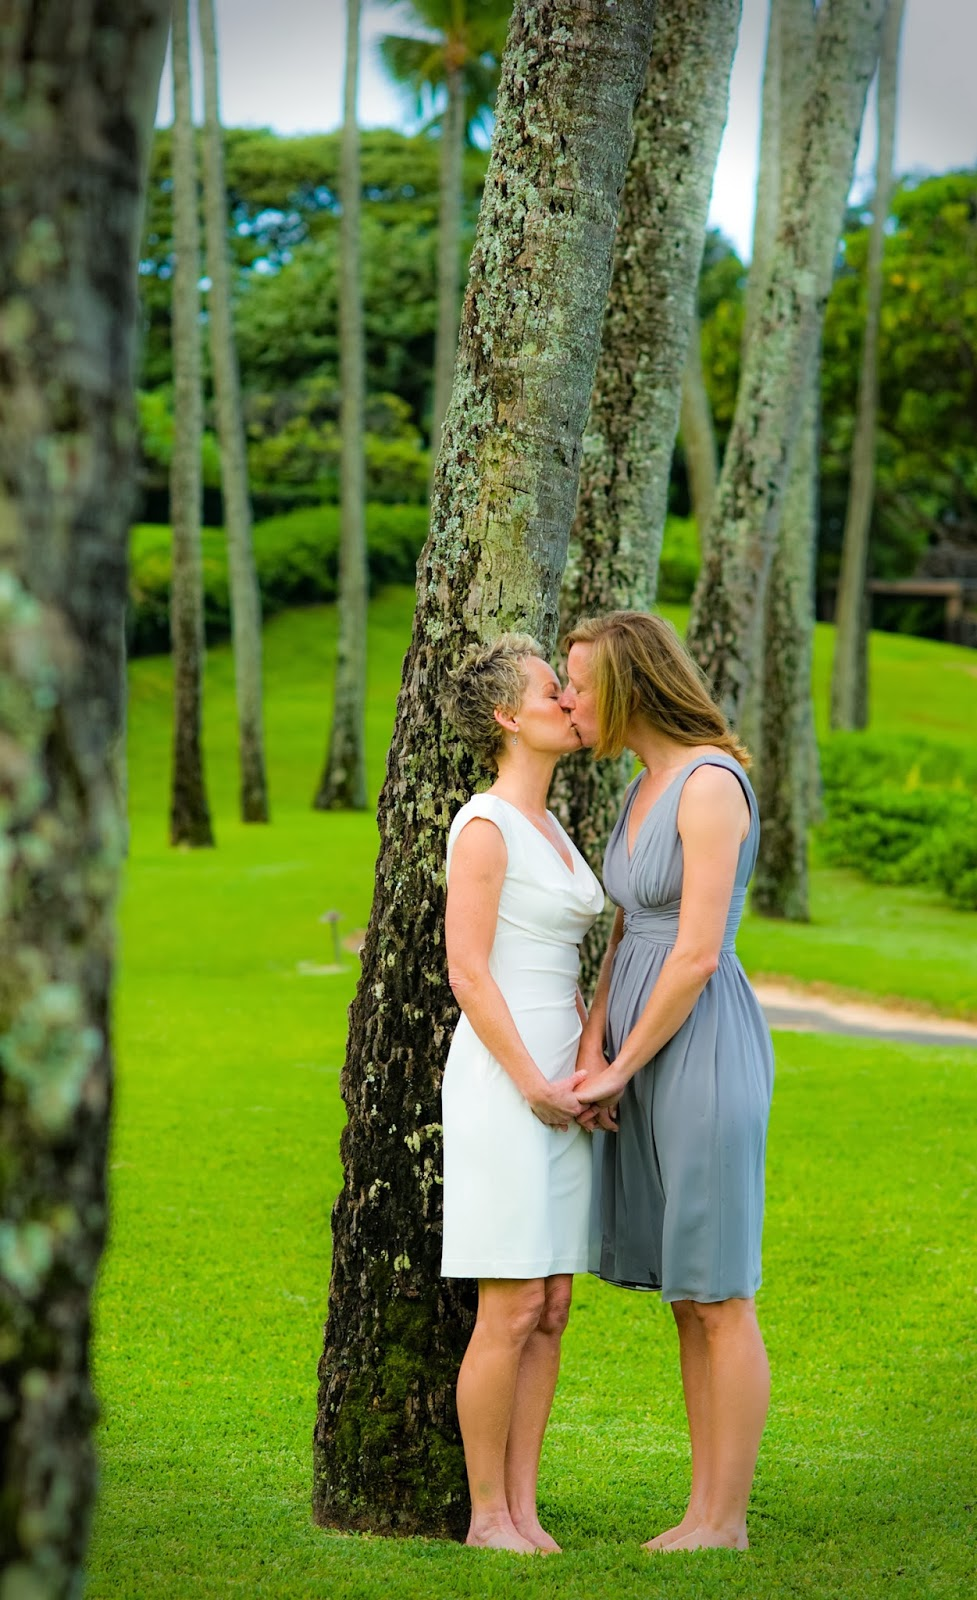 lgbt weddings hawaii, maui gay weddings planner, maui gay wedding photogrpahers